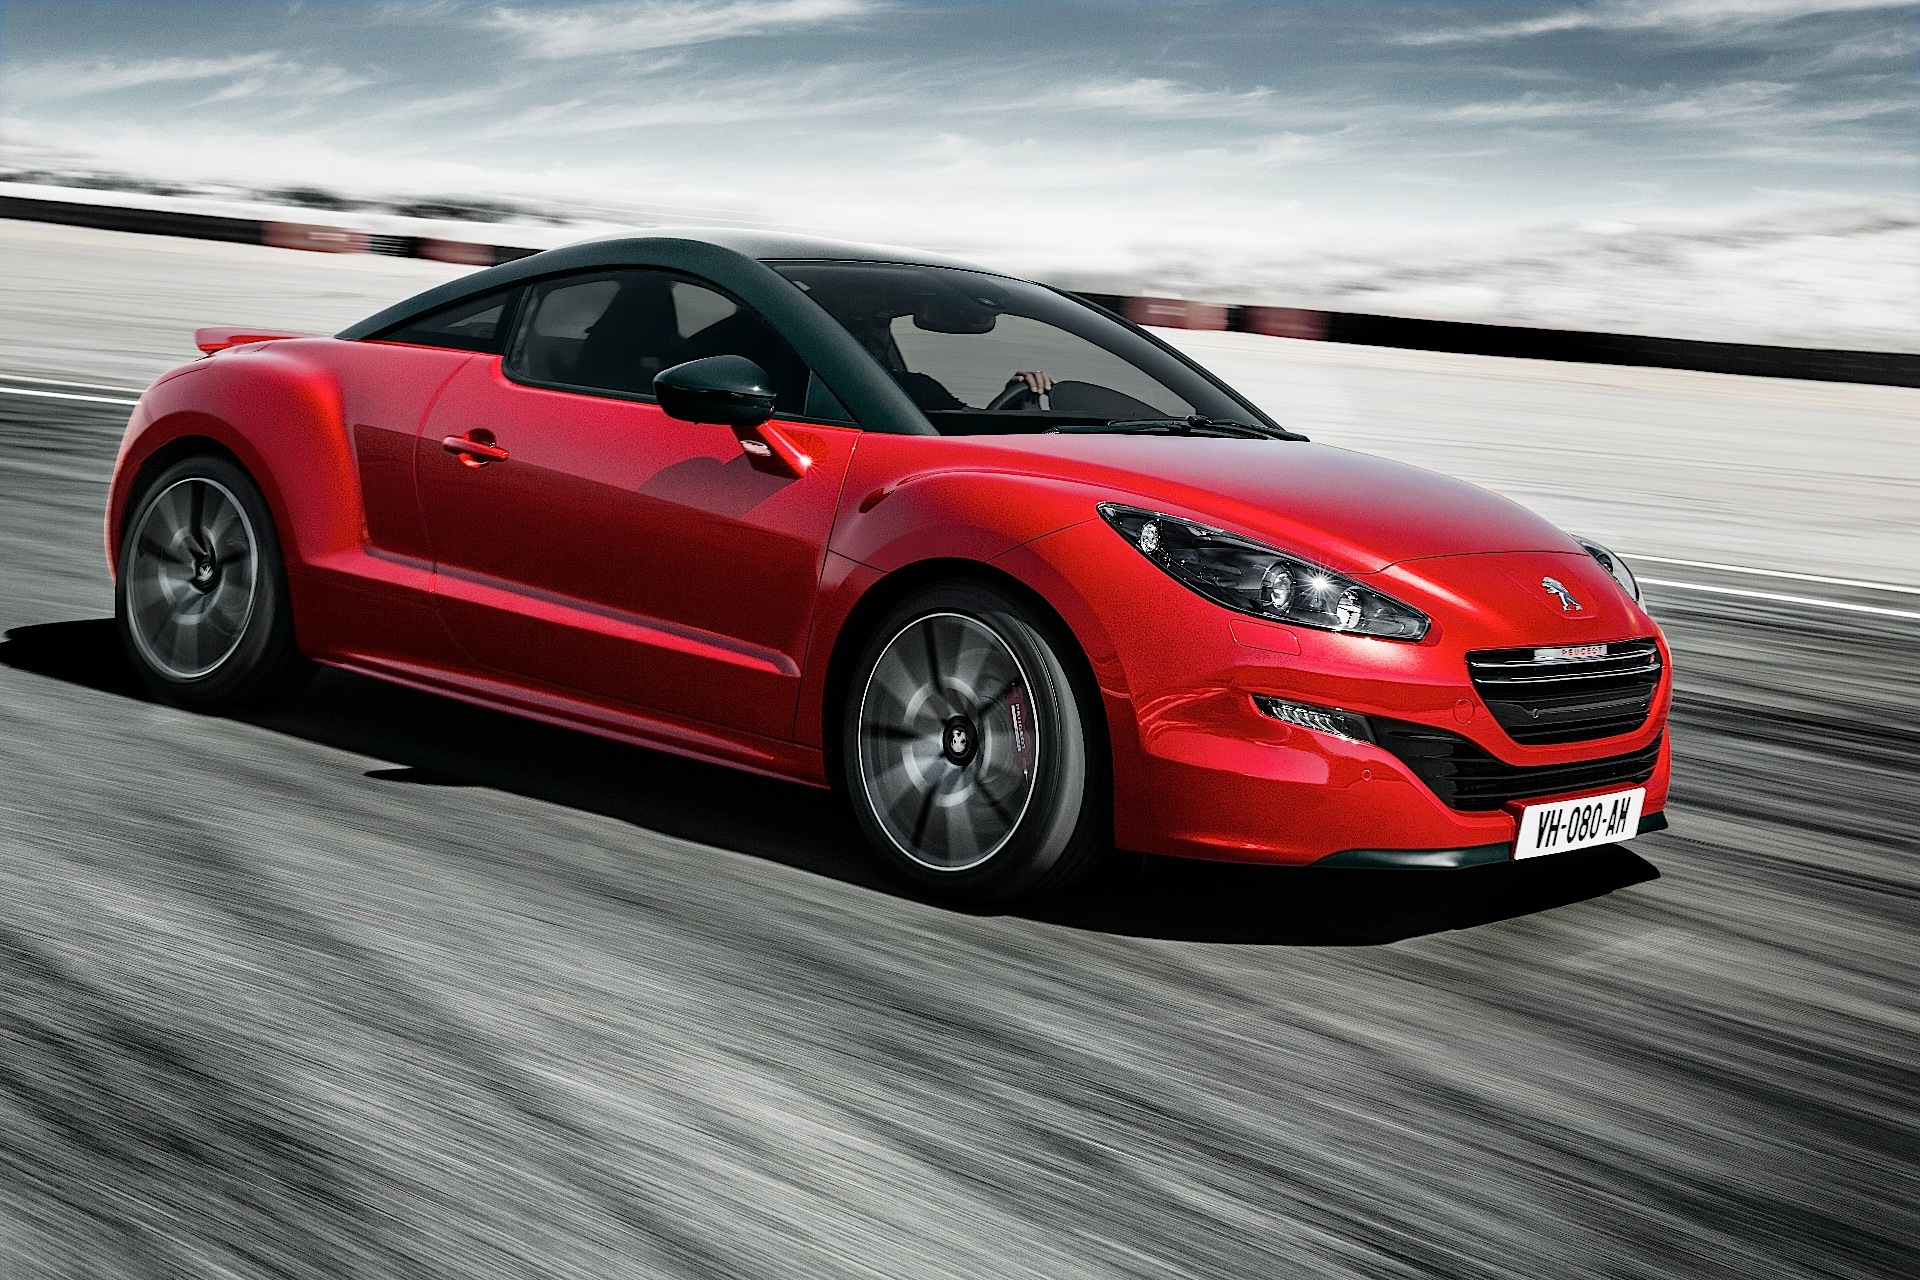 peugeot rcz r 2013 2014 2015 2016 2017 autoevolution. Black Bedroom Furniture Sets. Home Design Ideas